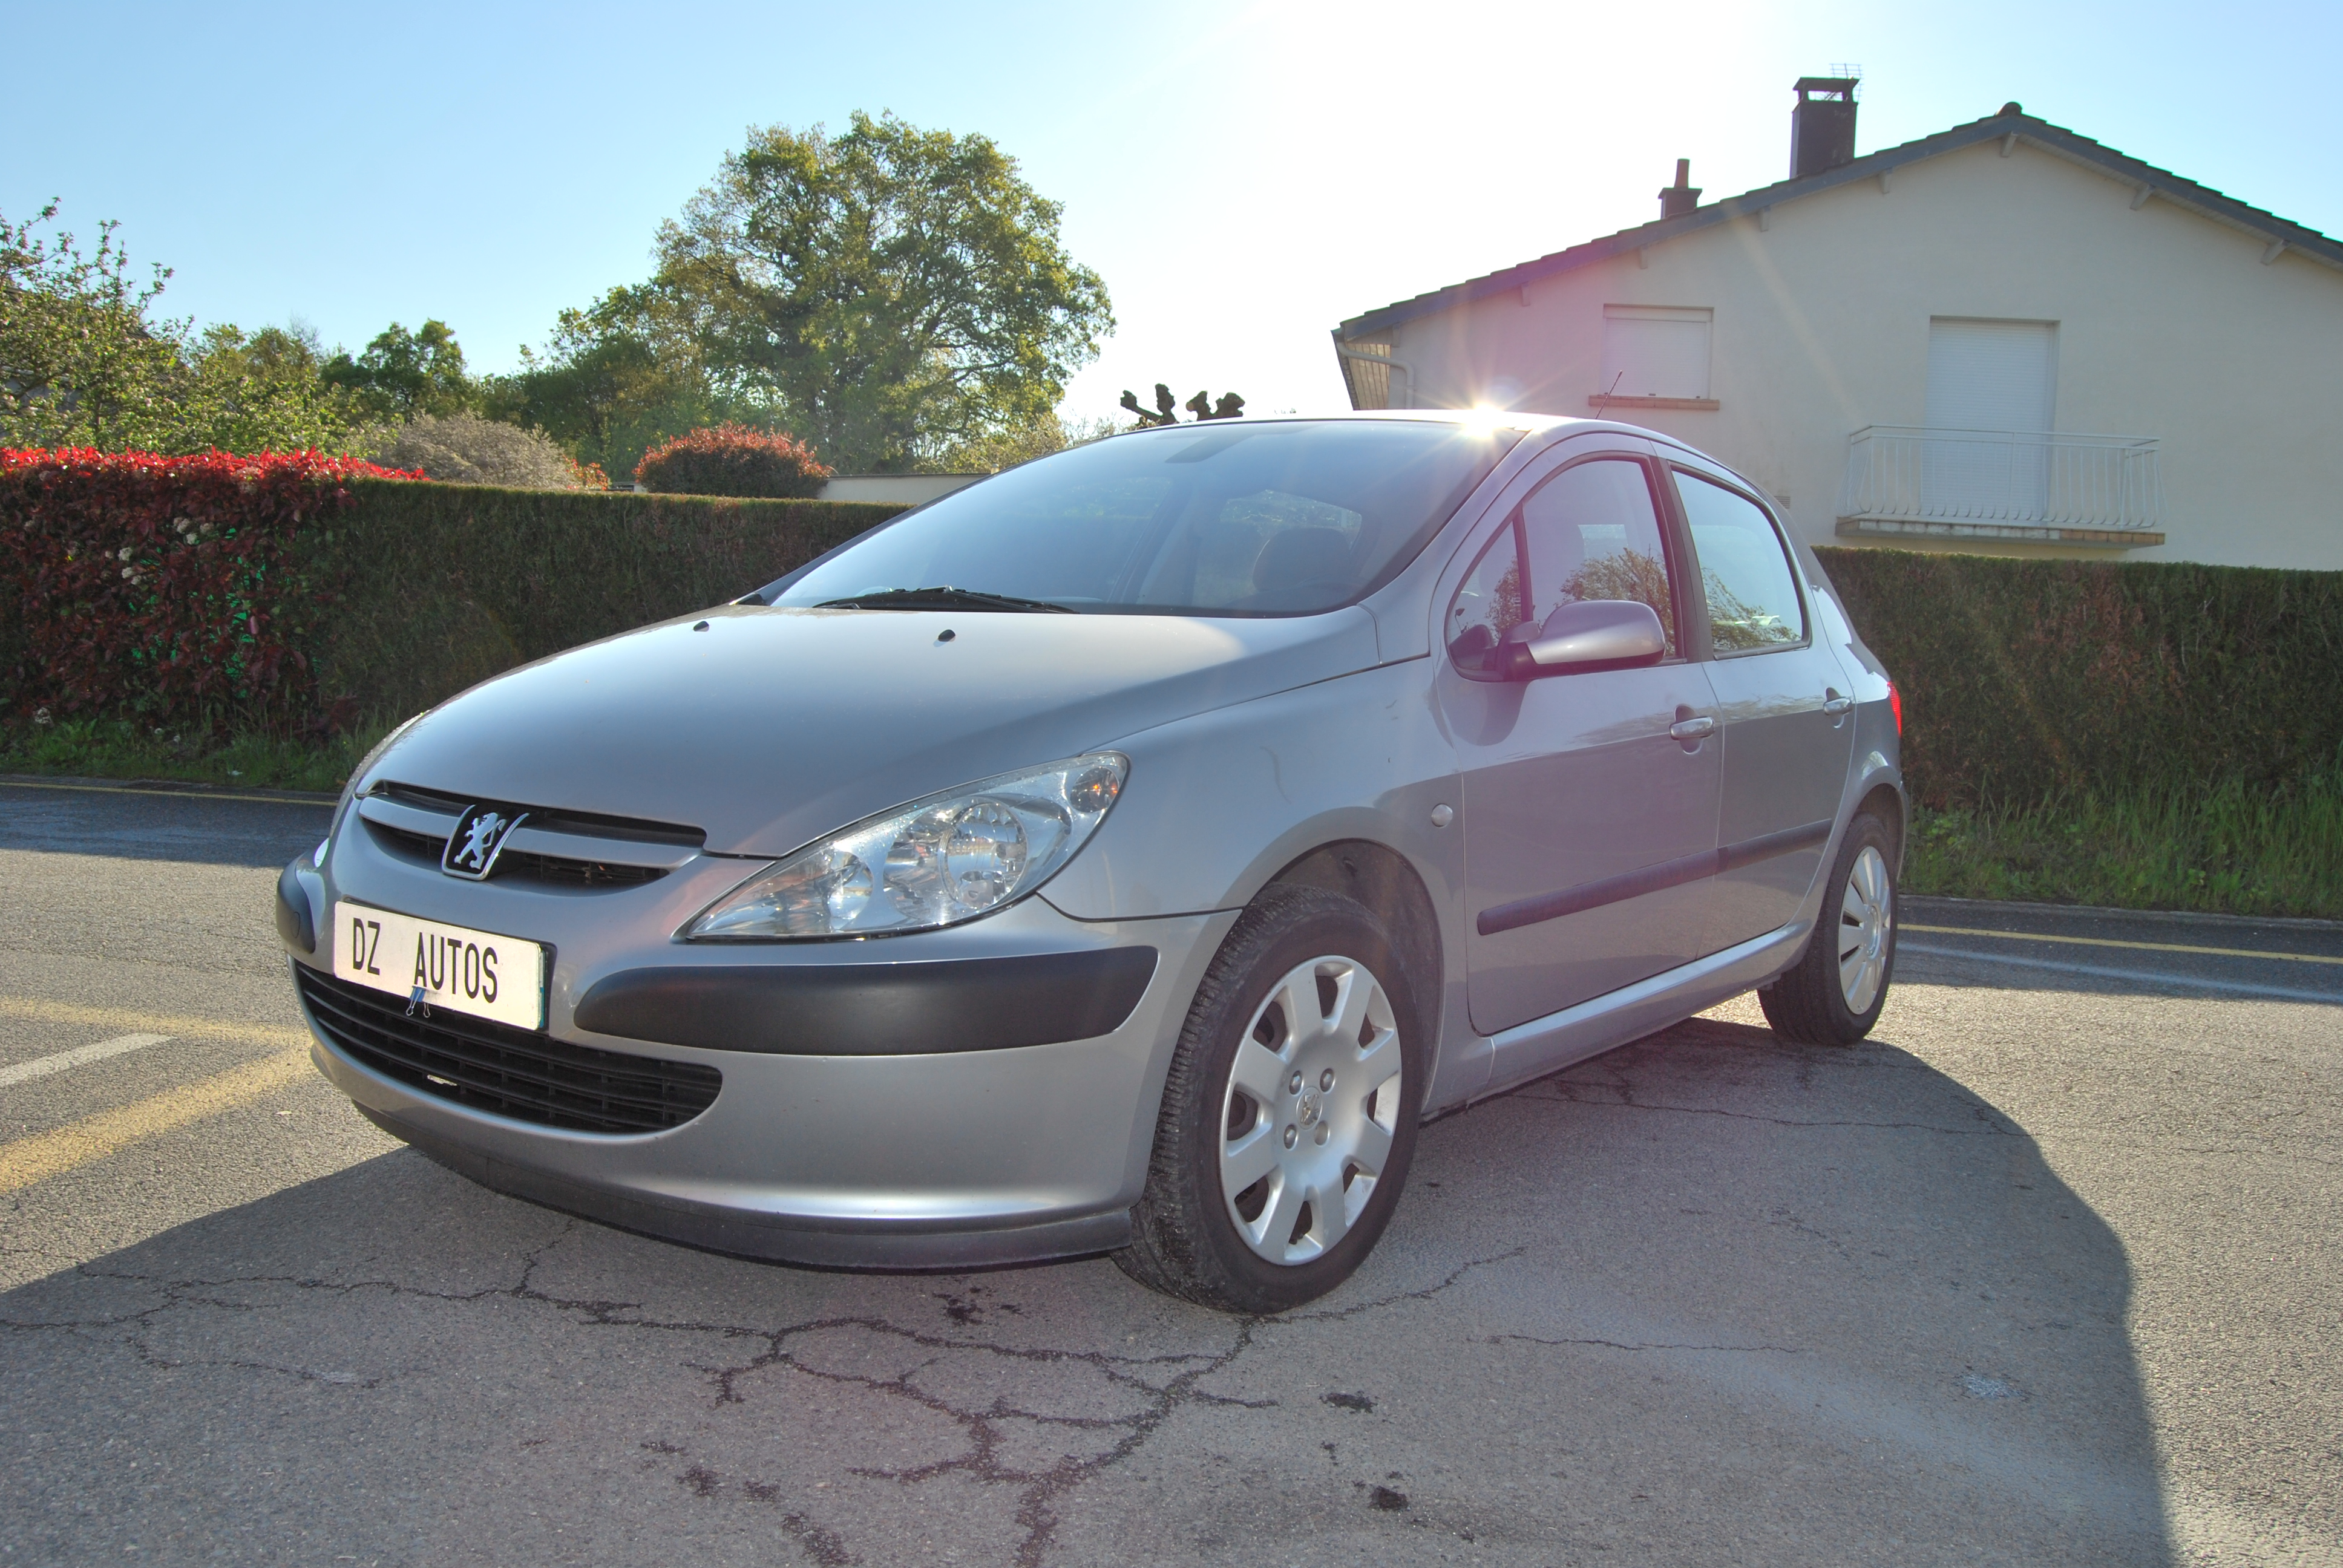 voiture peugeot 307 2 0 hdi 110 xt premium occasion diesel 2003 200000 km 2900. Black Bedroom Furniture Sets. Home Design Ideas